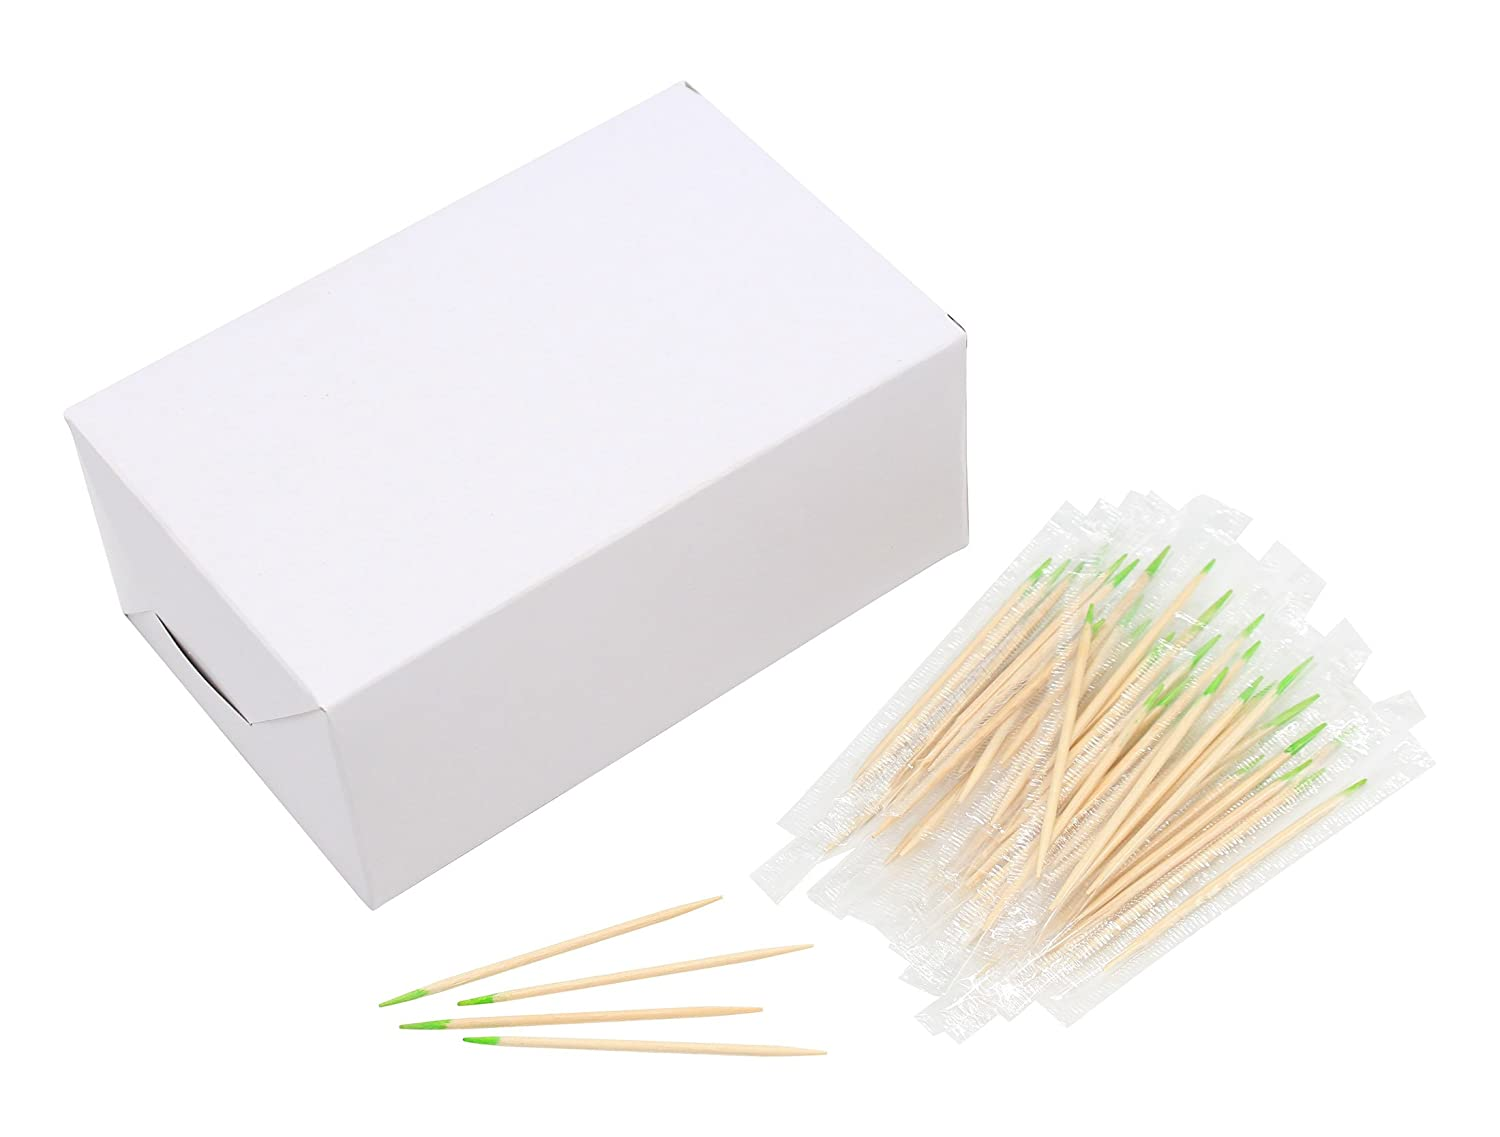 Wood Toothpick Mint Disposable Individual Cello Wrapped Wooden Toothpicks 2.6 Inch Length Package of 1000